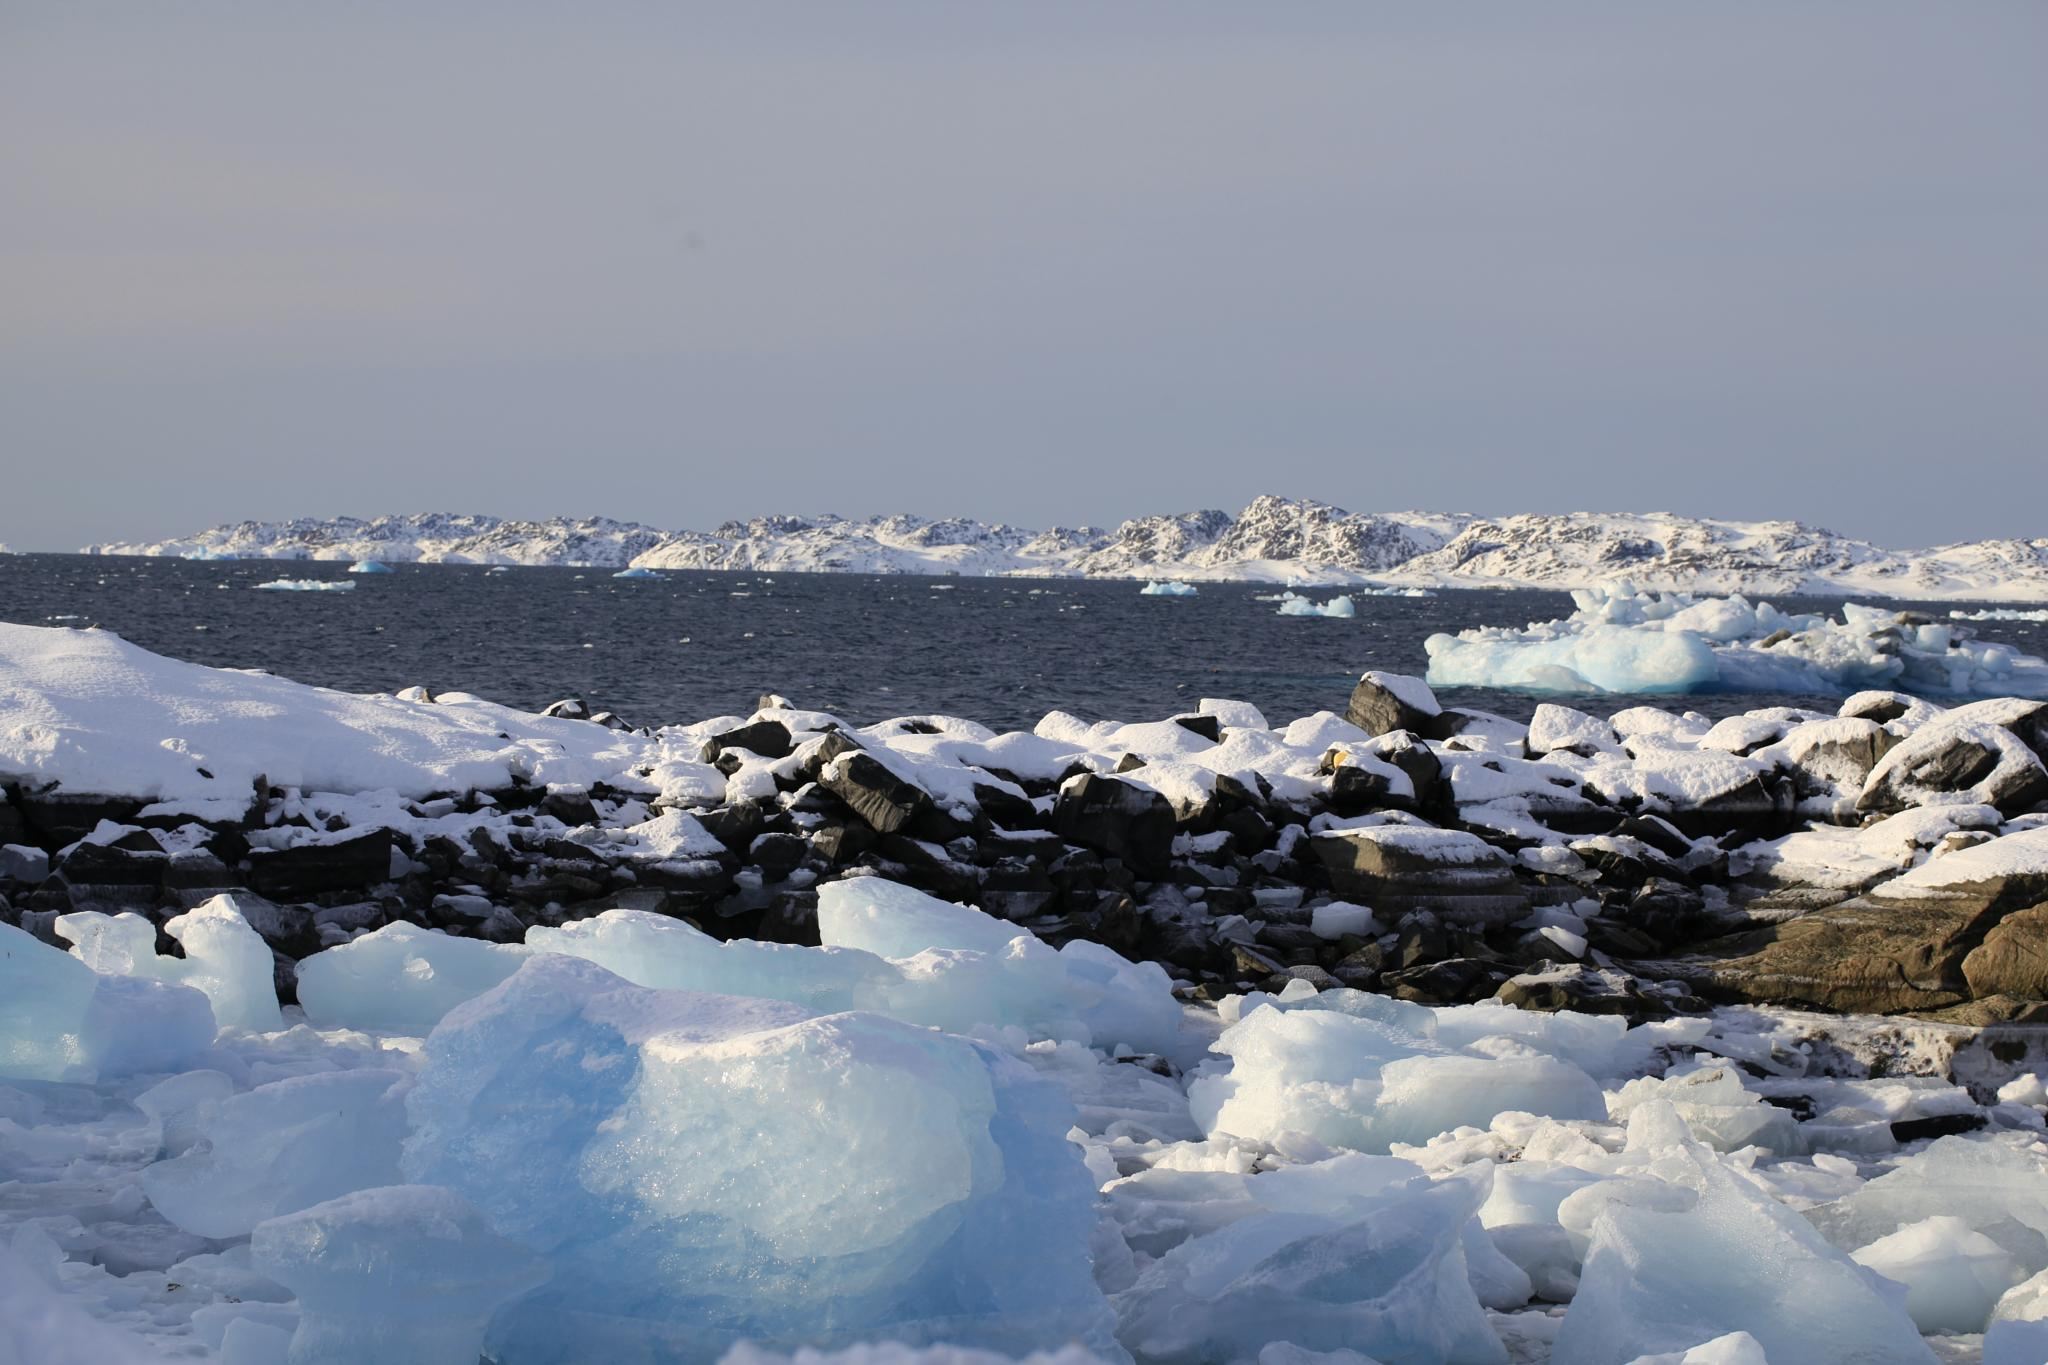 greenlandic ice, good i a whisky chus, beautiful look on, but dangerous when sail, make hull in boat by Tom Augo Lynge